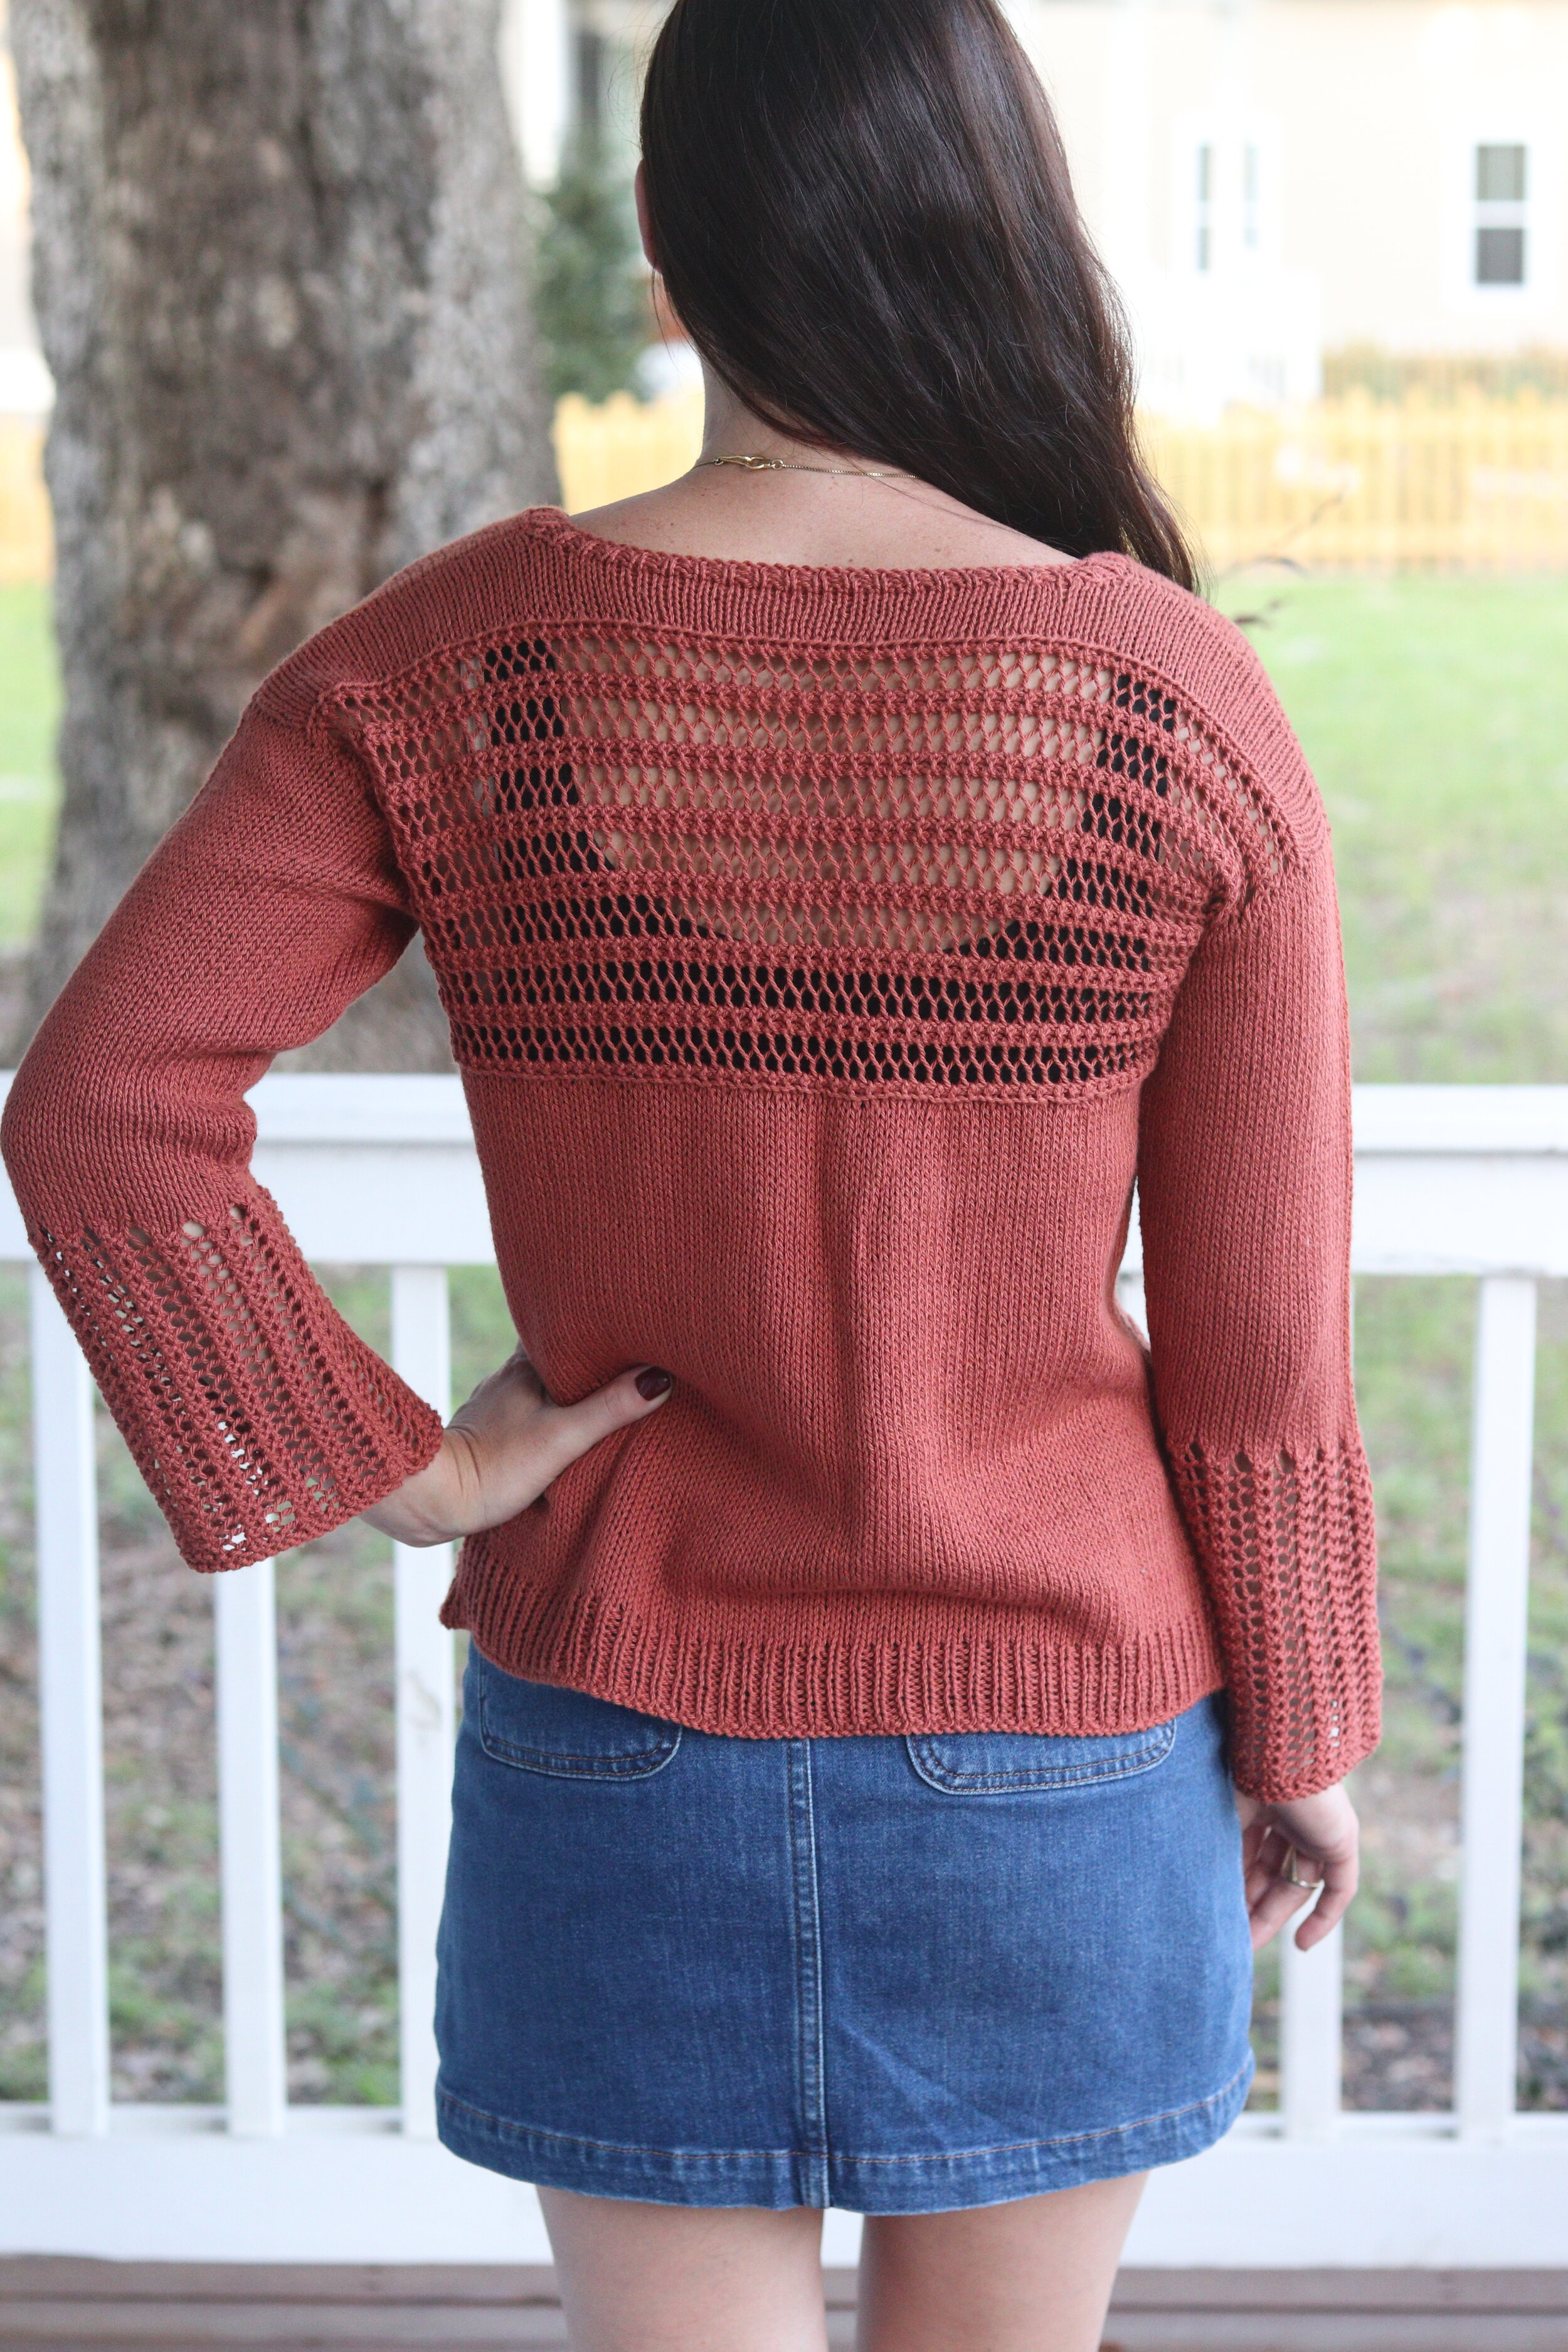 Petra Klever Knits Designs